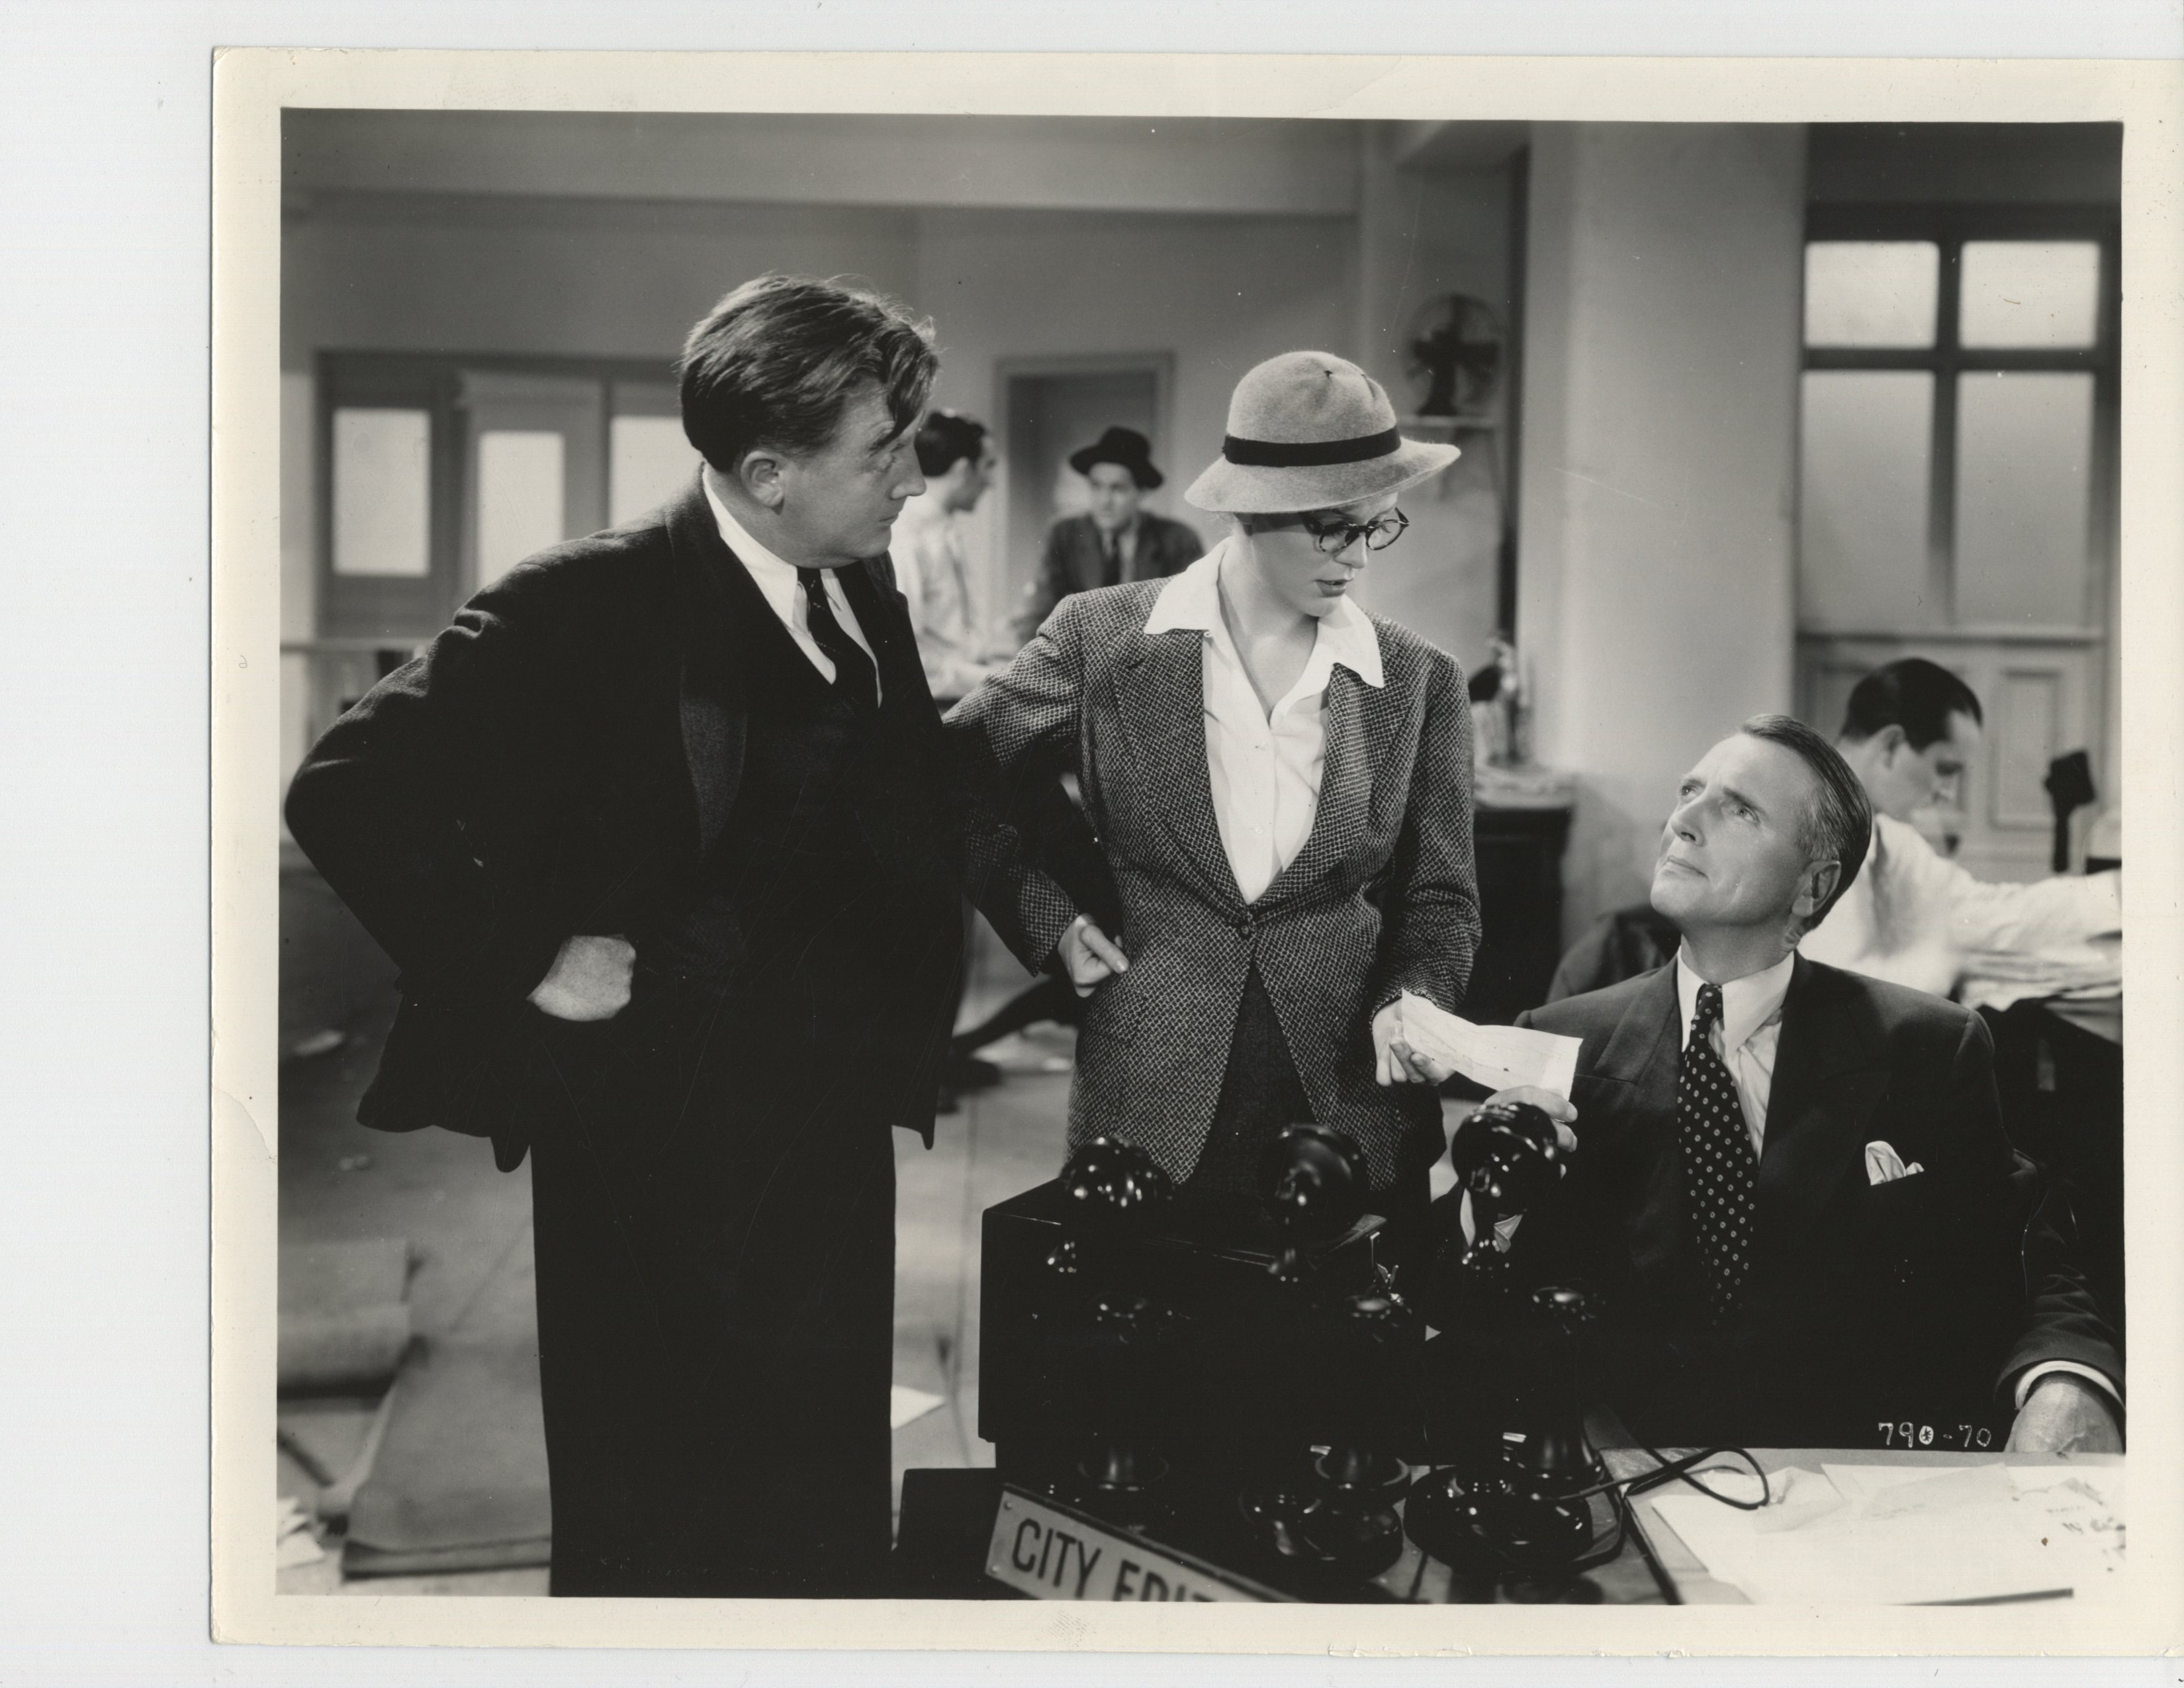 Gloria Stuart, Robert Gleckler, and David Oliver in The Girl on the Front Page (1936)